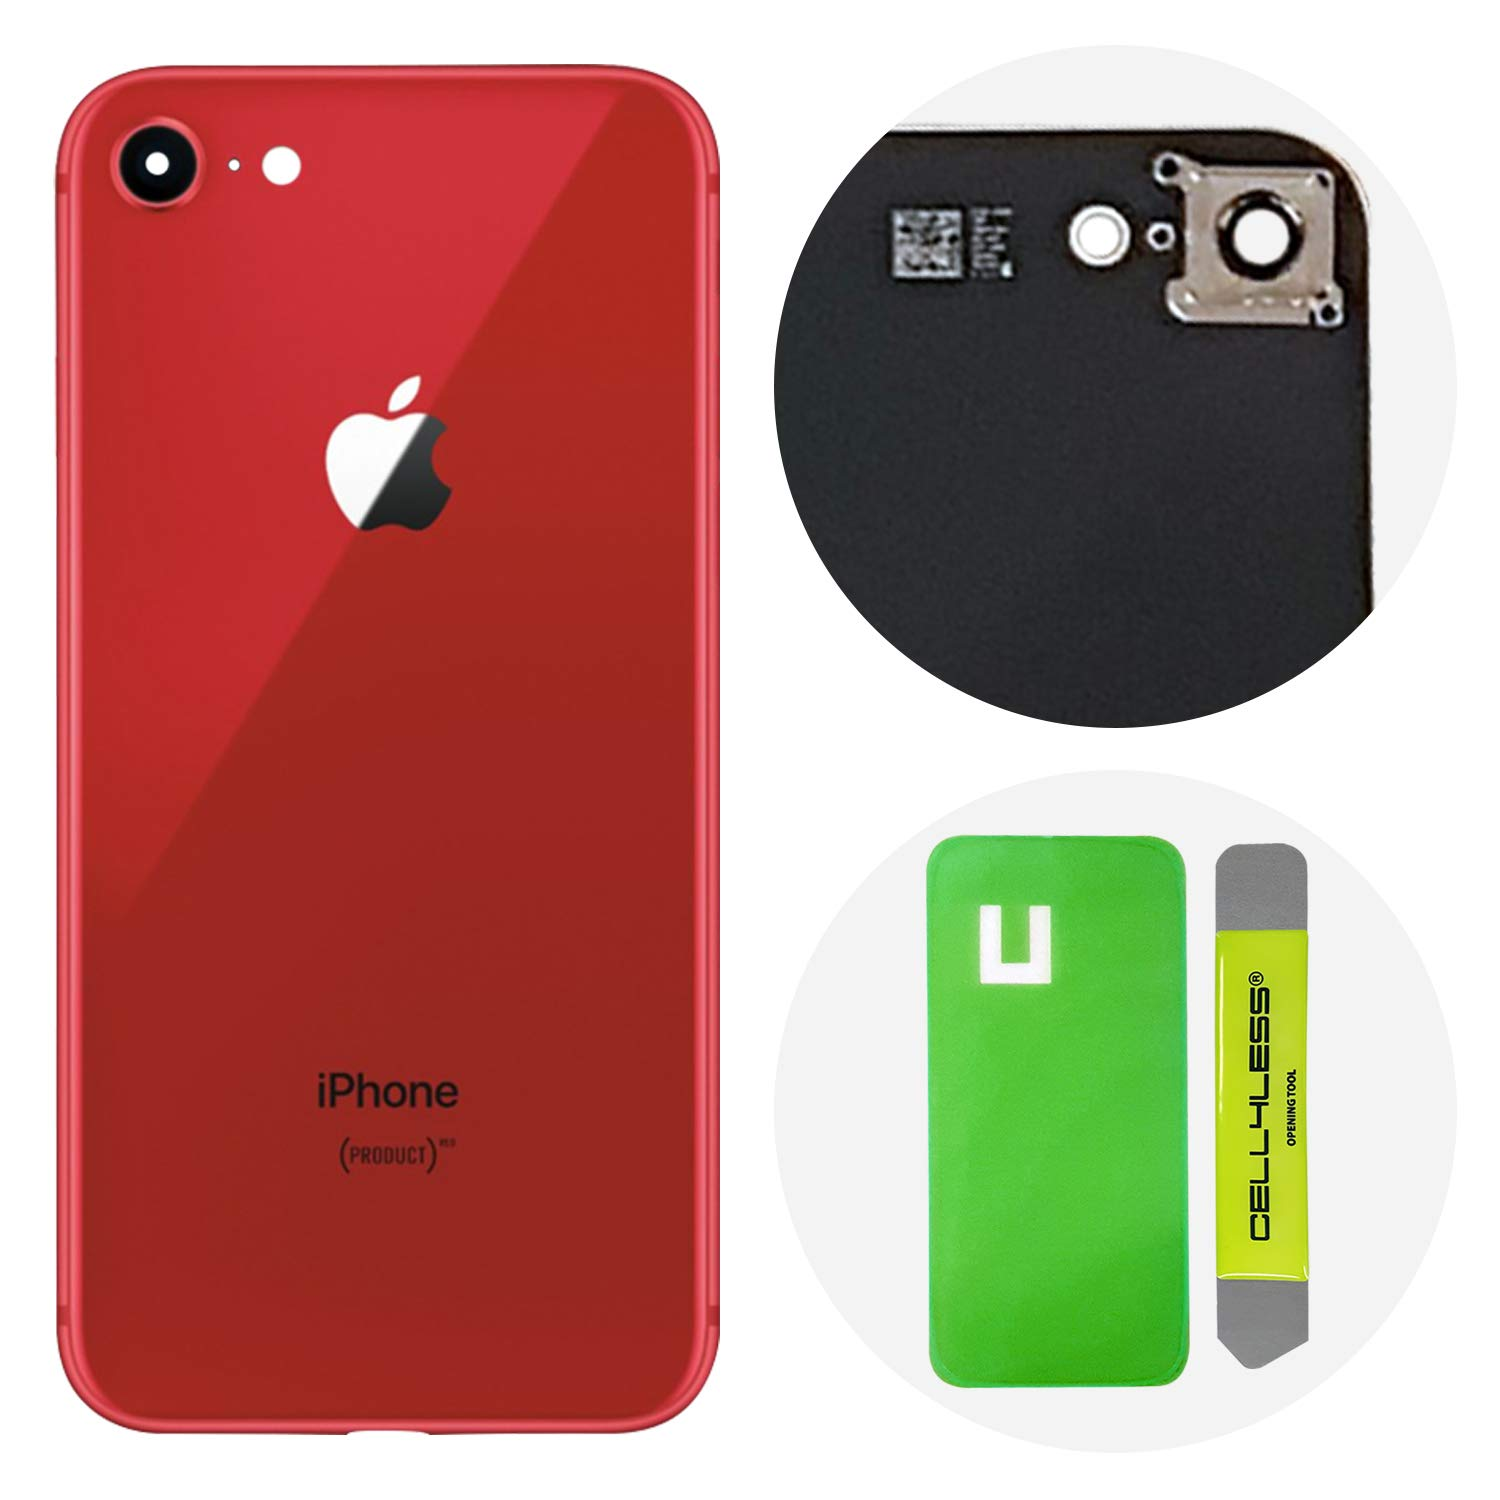 Adhesive /& Removal Tool for Apple iPhone 8 CELL4LESS Back Glass Cover OEM Battery Door Replacement w//Installed Camera Frame /& Lens Gold 8